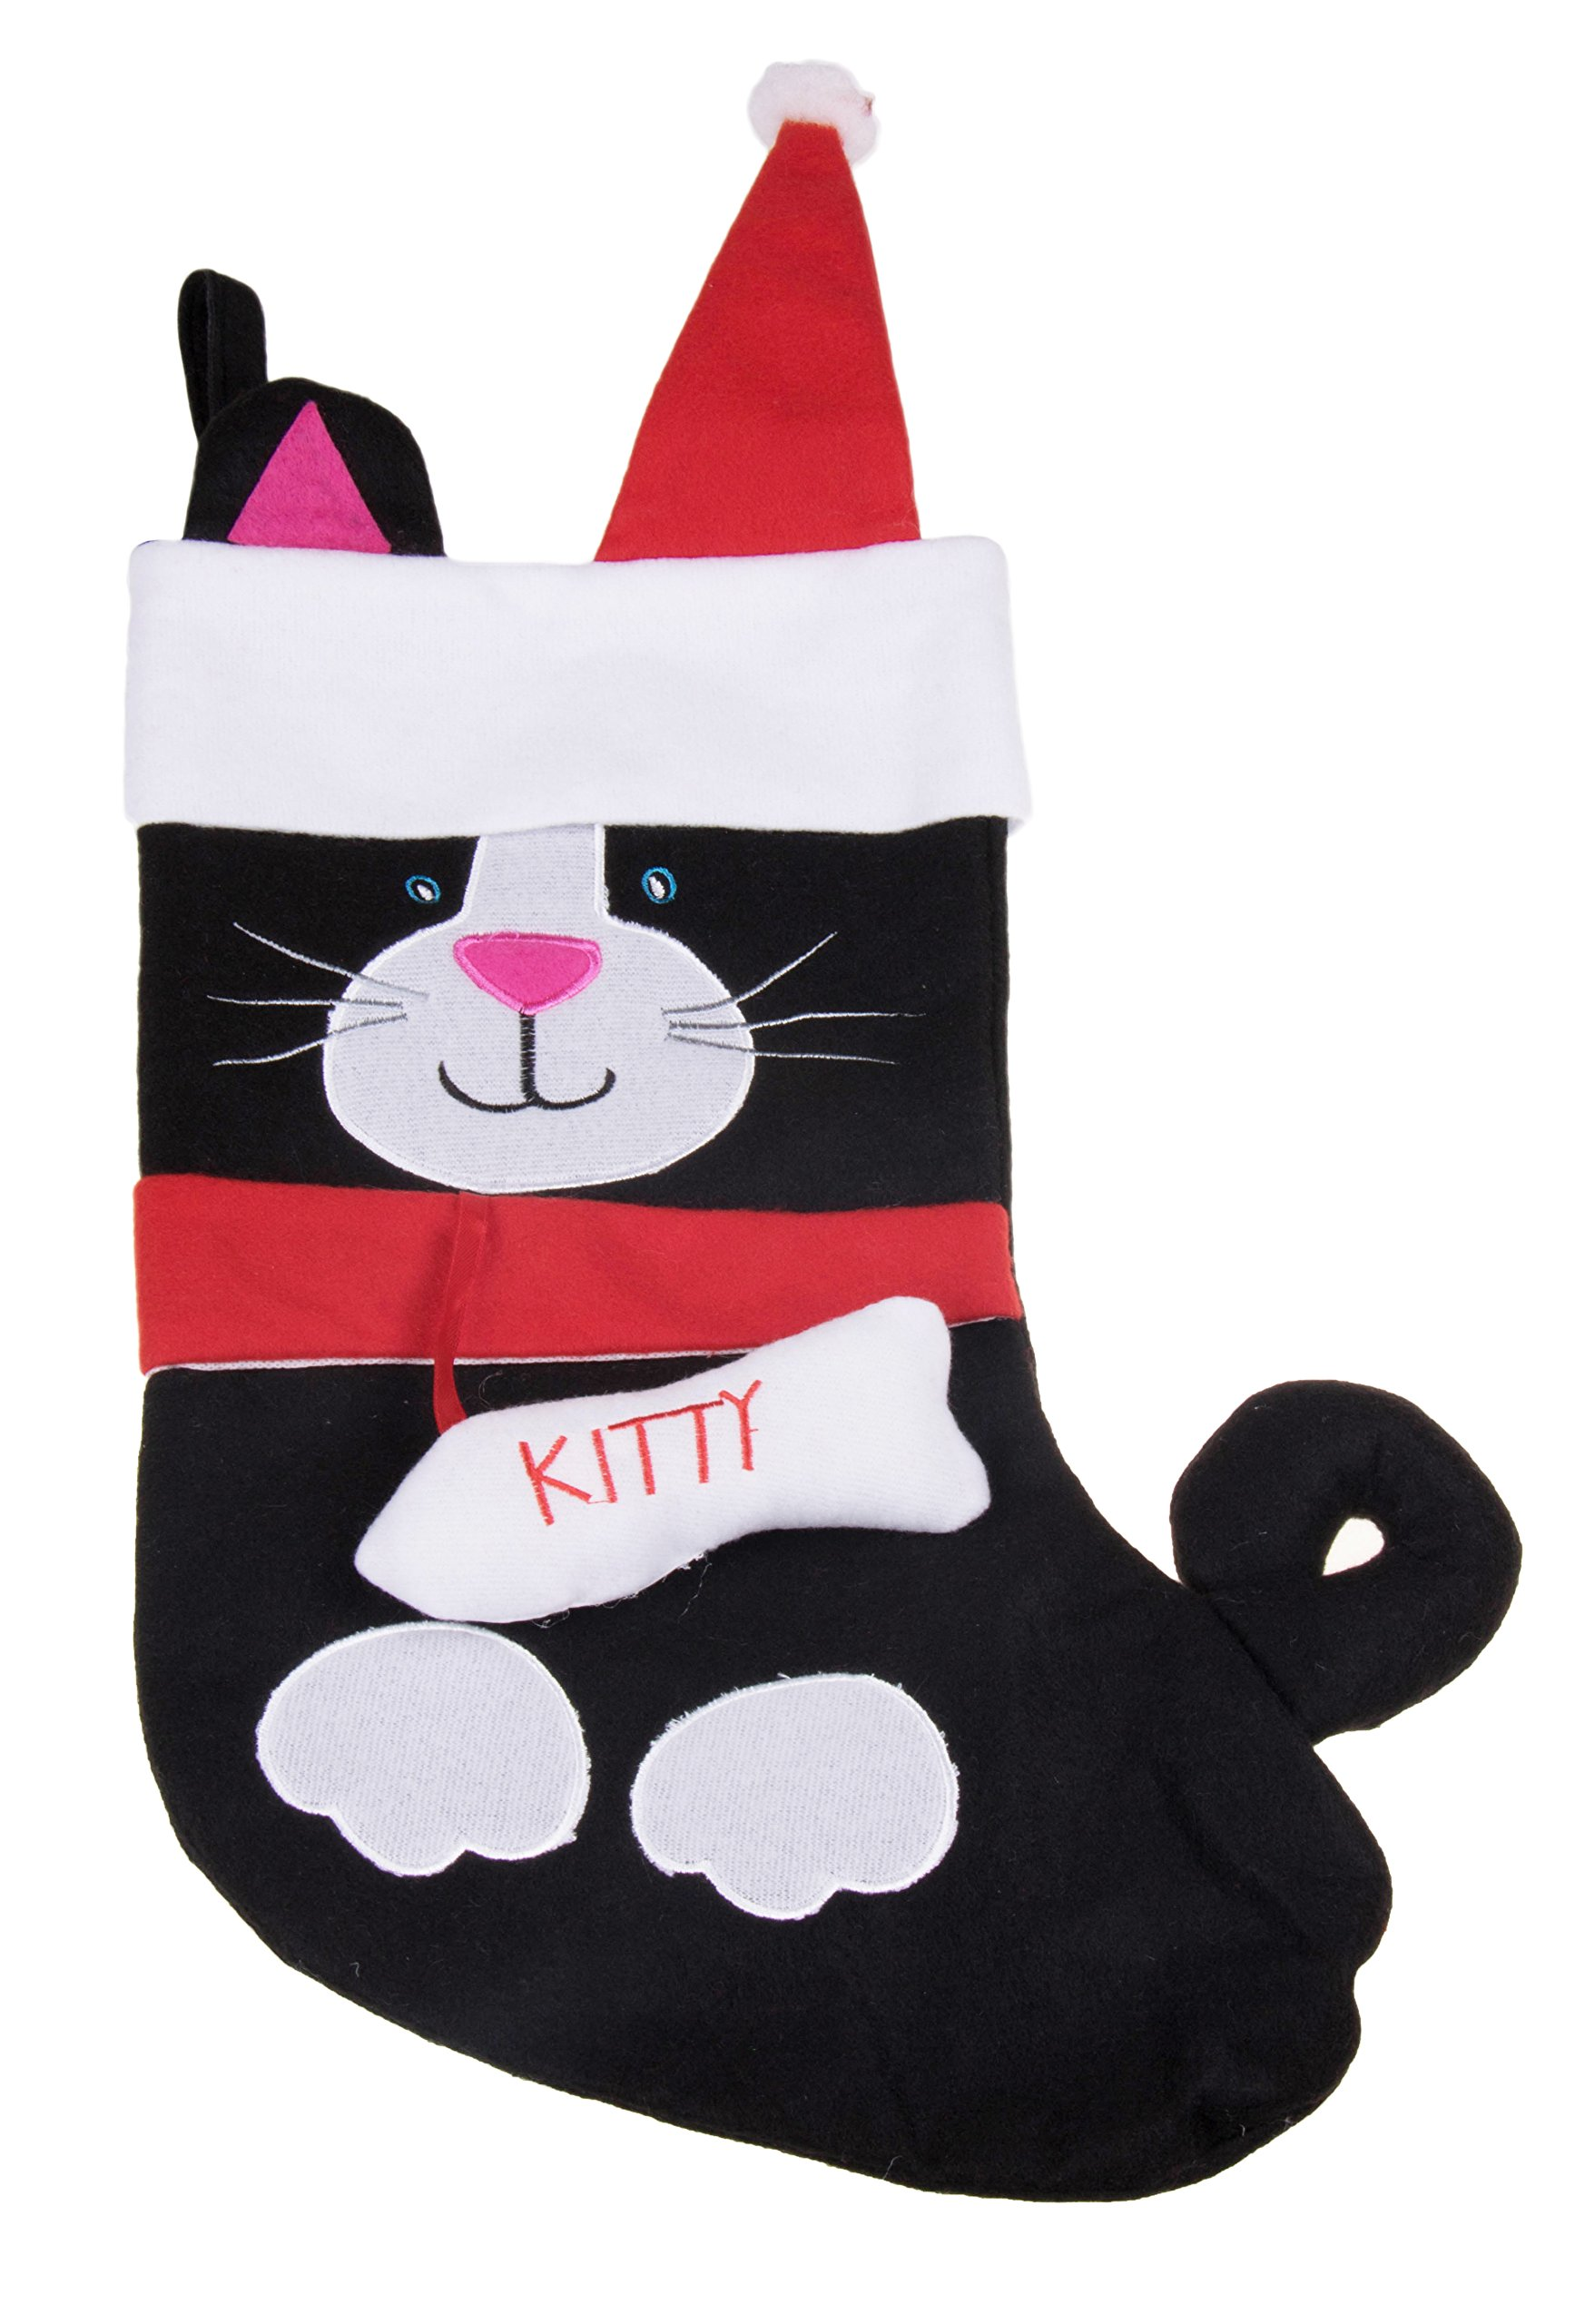 Kitty Cat Soft Plush Cloth Hanging Christmas Stocking | For Kids, Teens, Adults | Black and White Holiday Decor Theme | Perfect for Small Gifts, Stocking Stuffers, & Candy | Measures 17'' Tall